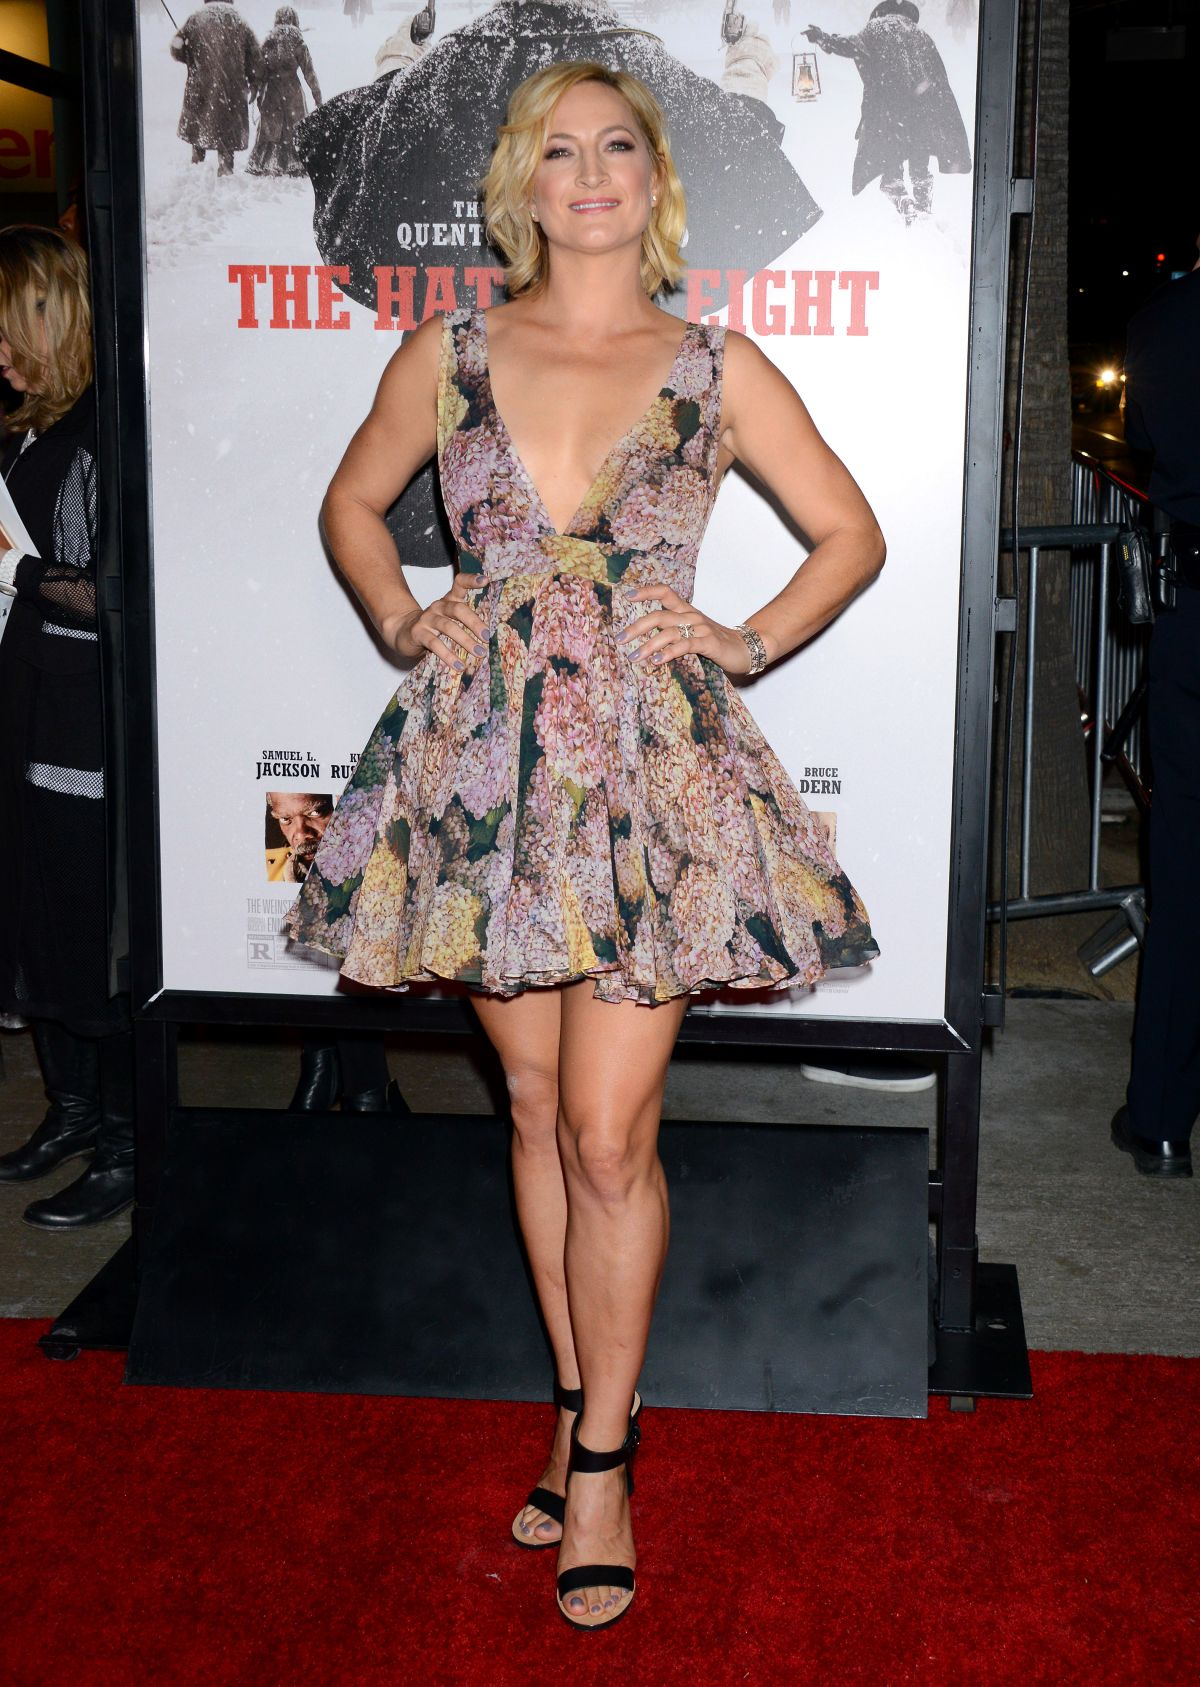 ZOE BELL at The Hateful Eight Premiere in Los Angeles 12 ...